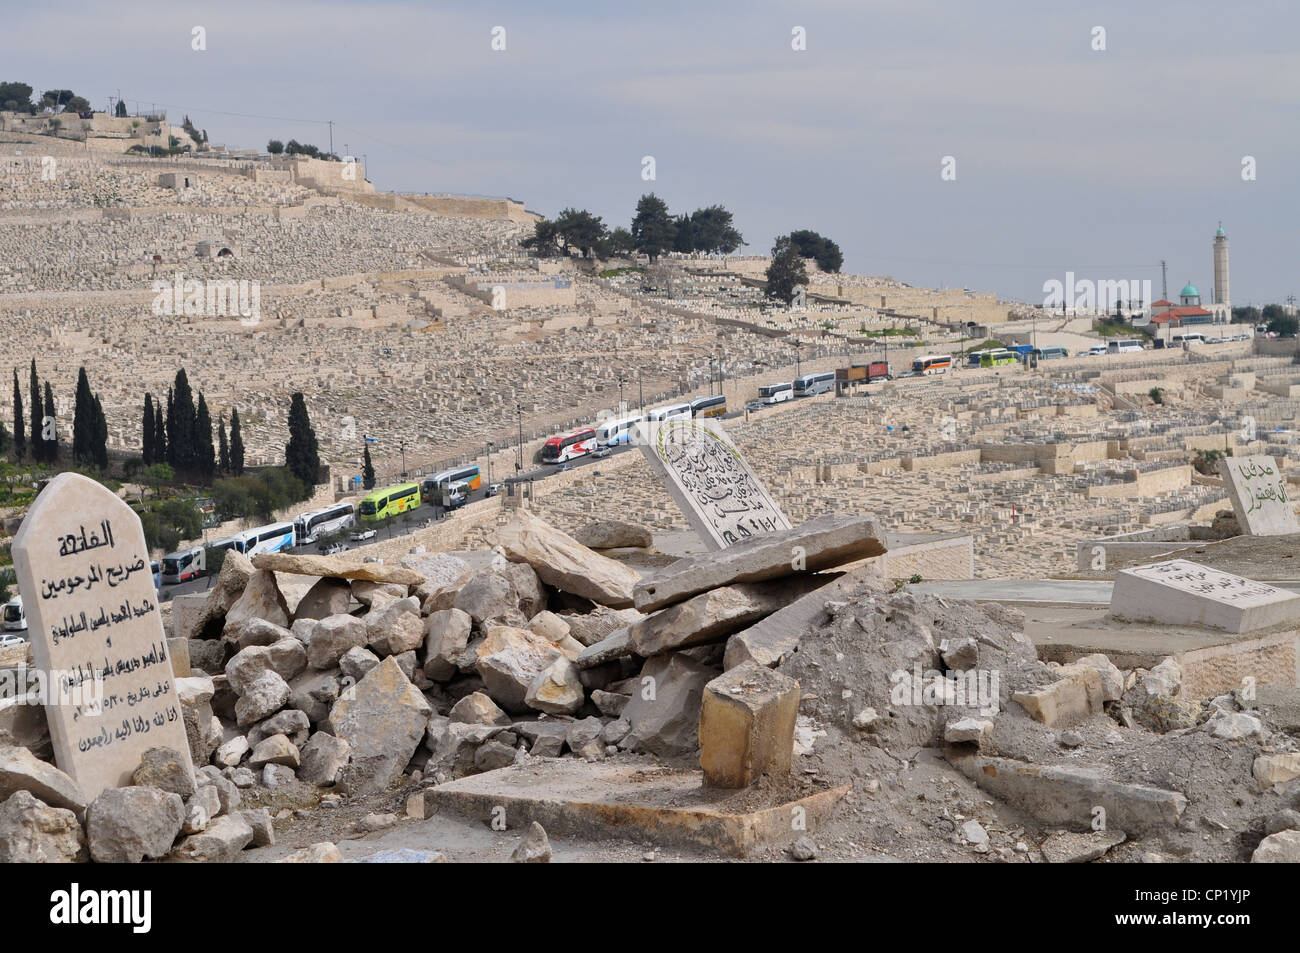 Occupied East Jerusalem with Muslim and Jewish graveyards and disputed holy sites. Jewish graves line the Mount - Stock Image